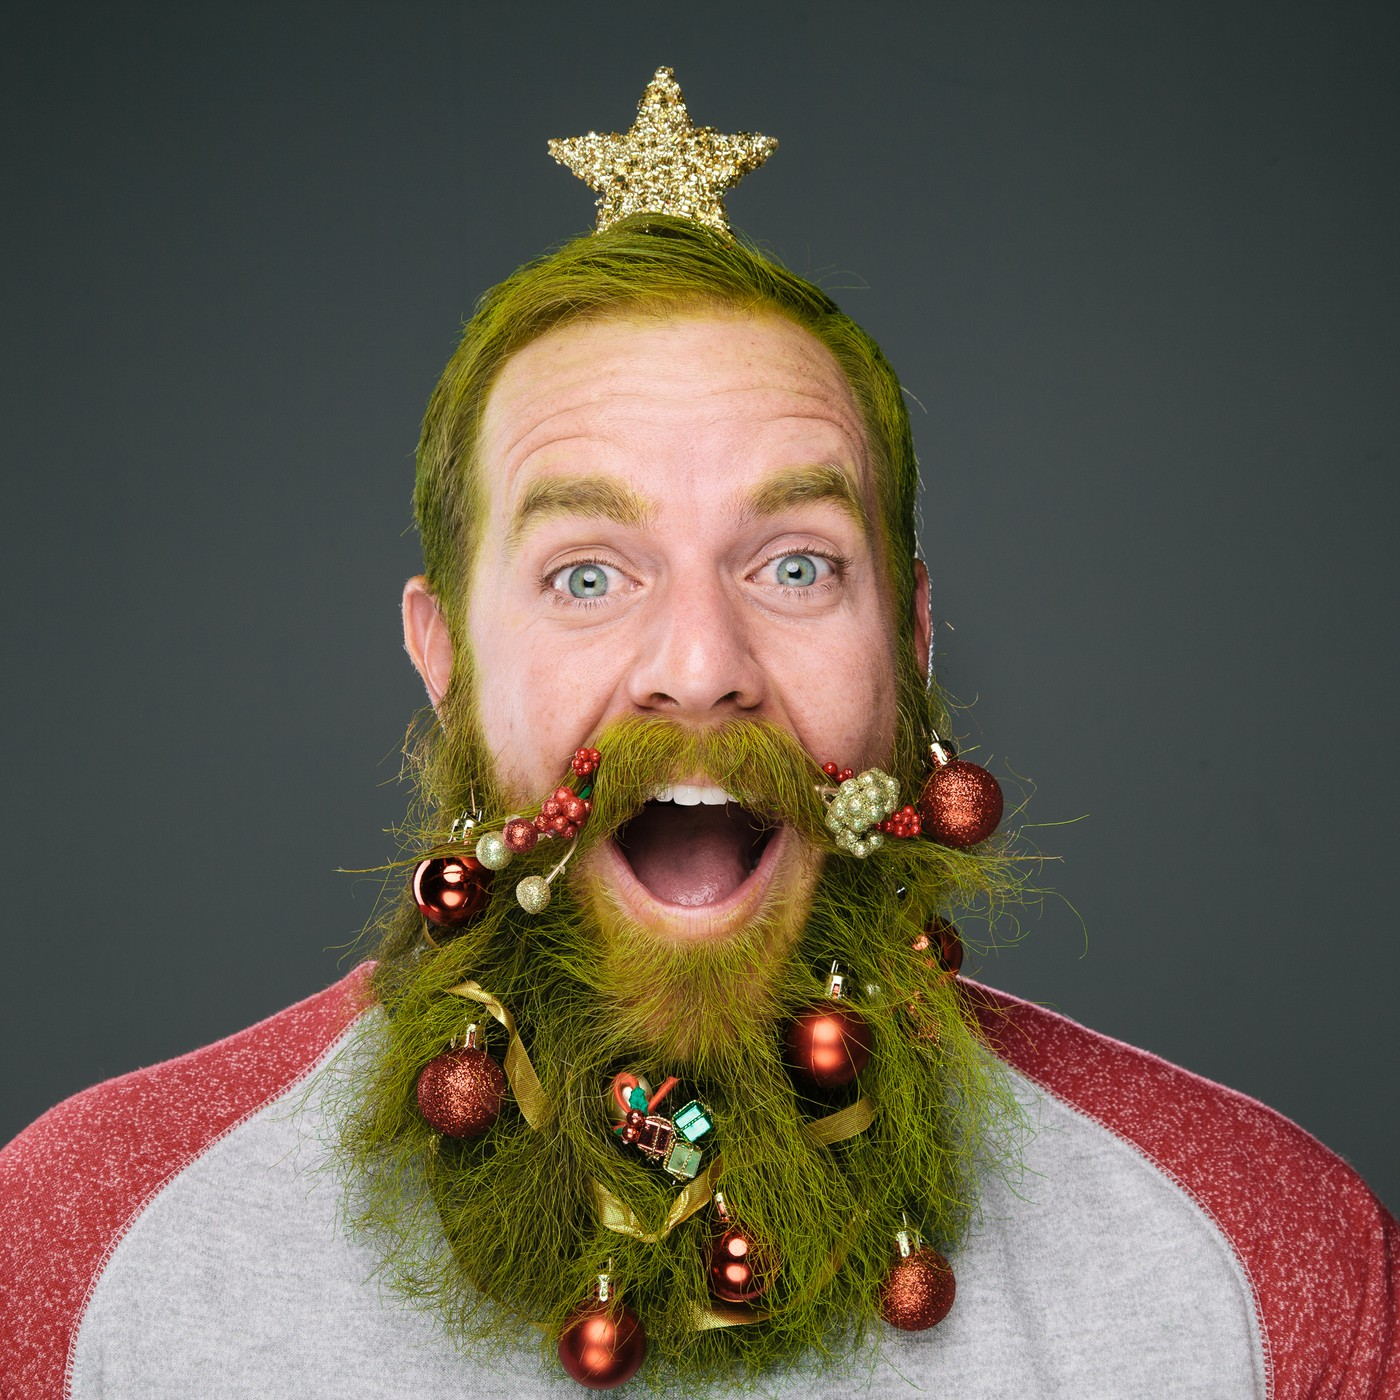 Twelve Beards of Christmas!